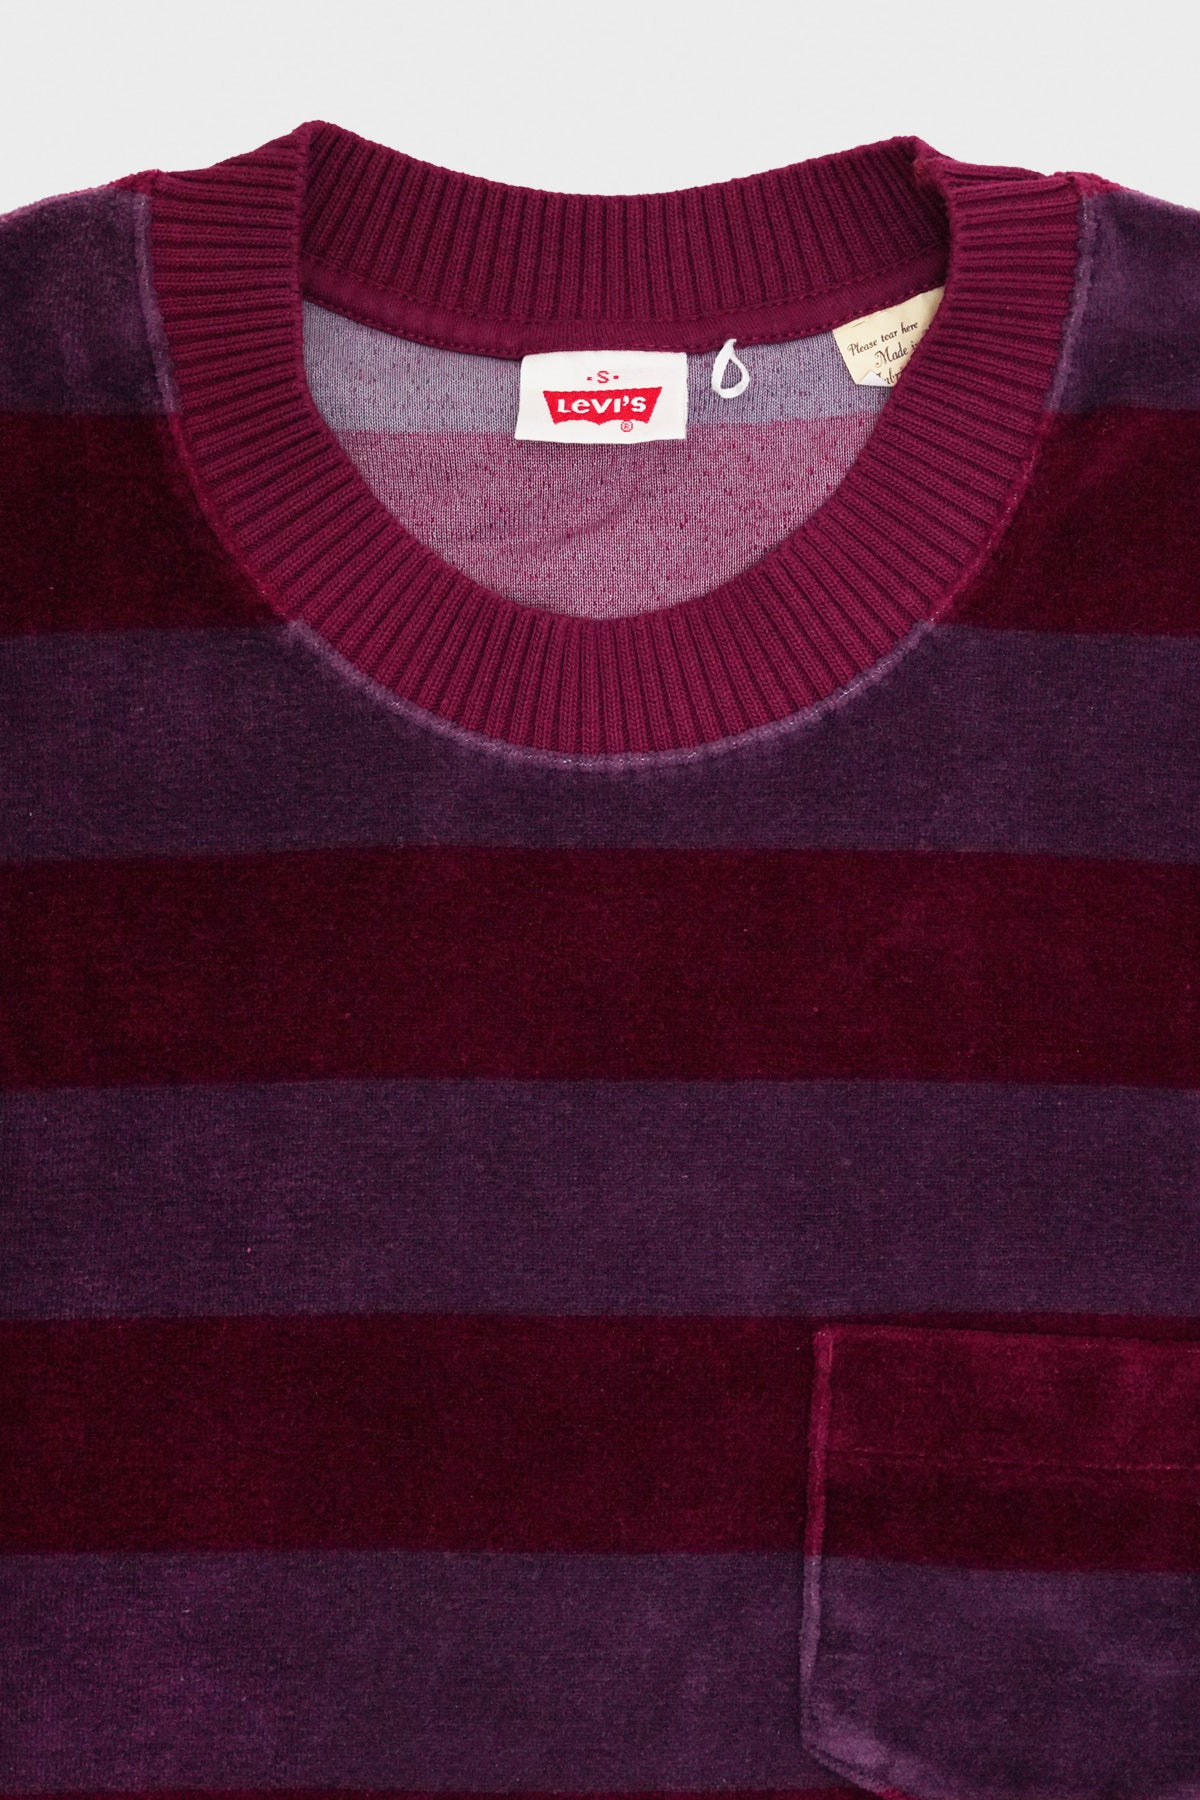 Levi's Vintage Clothing - 1960s Velour Crew - Tonal Purple Stripe - Canoe Club